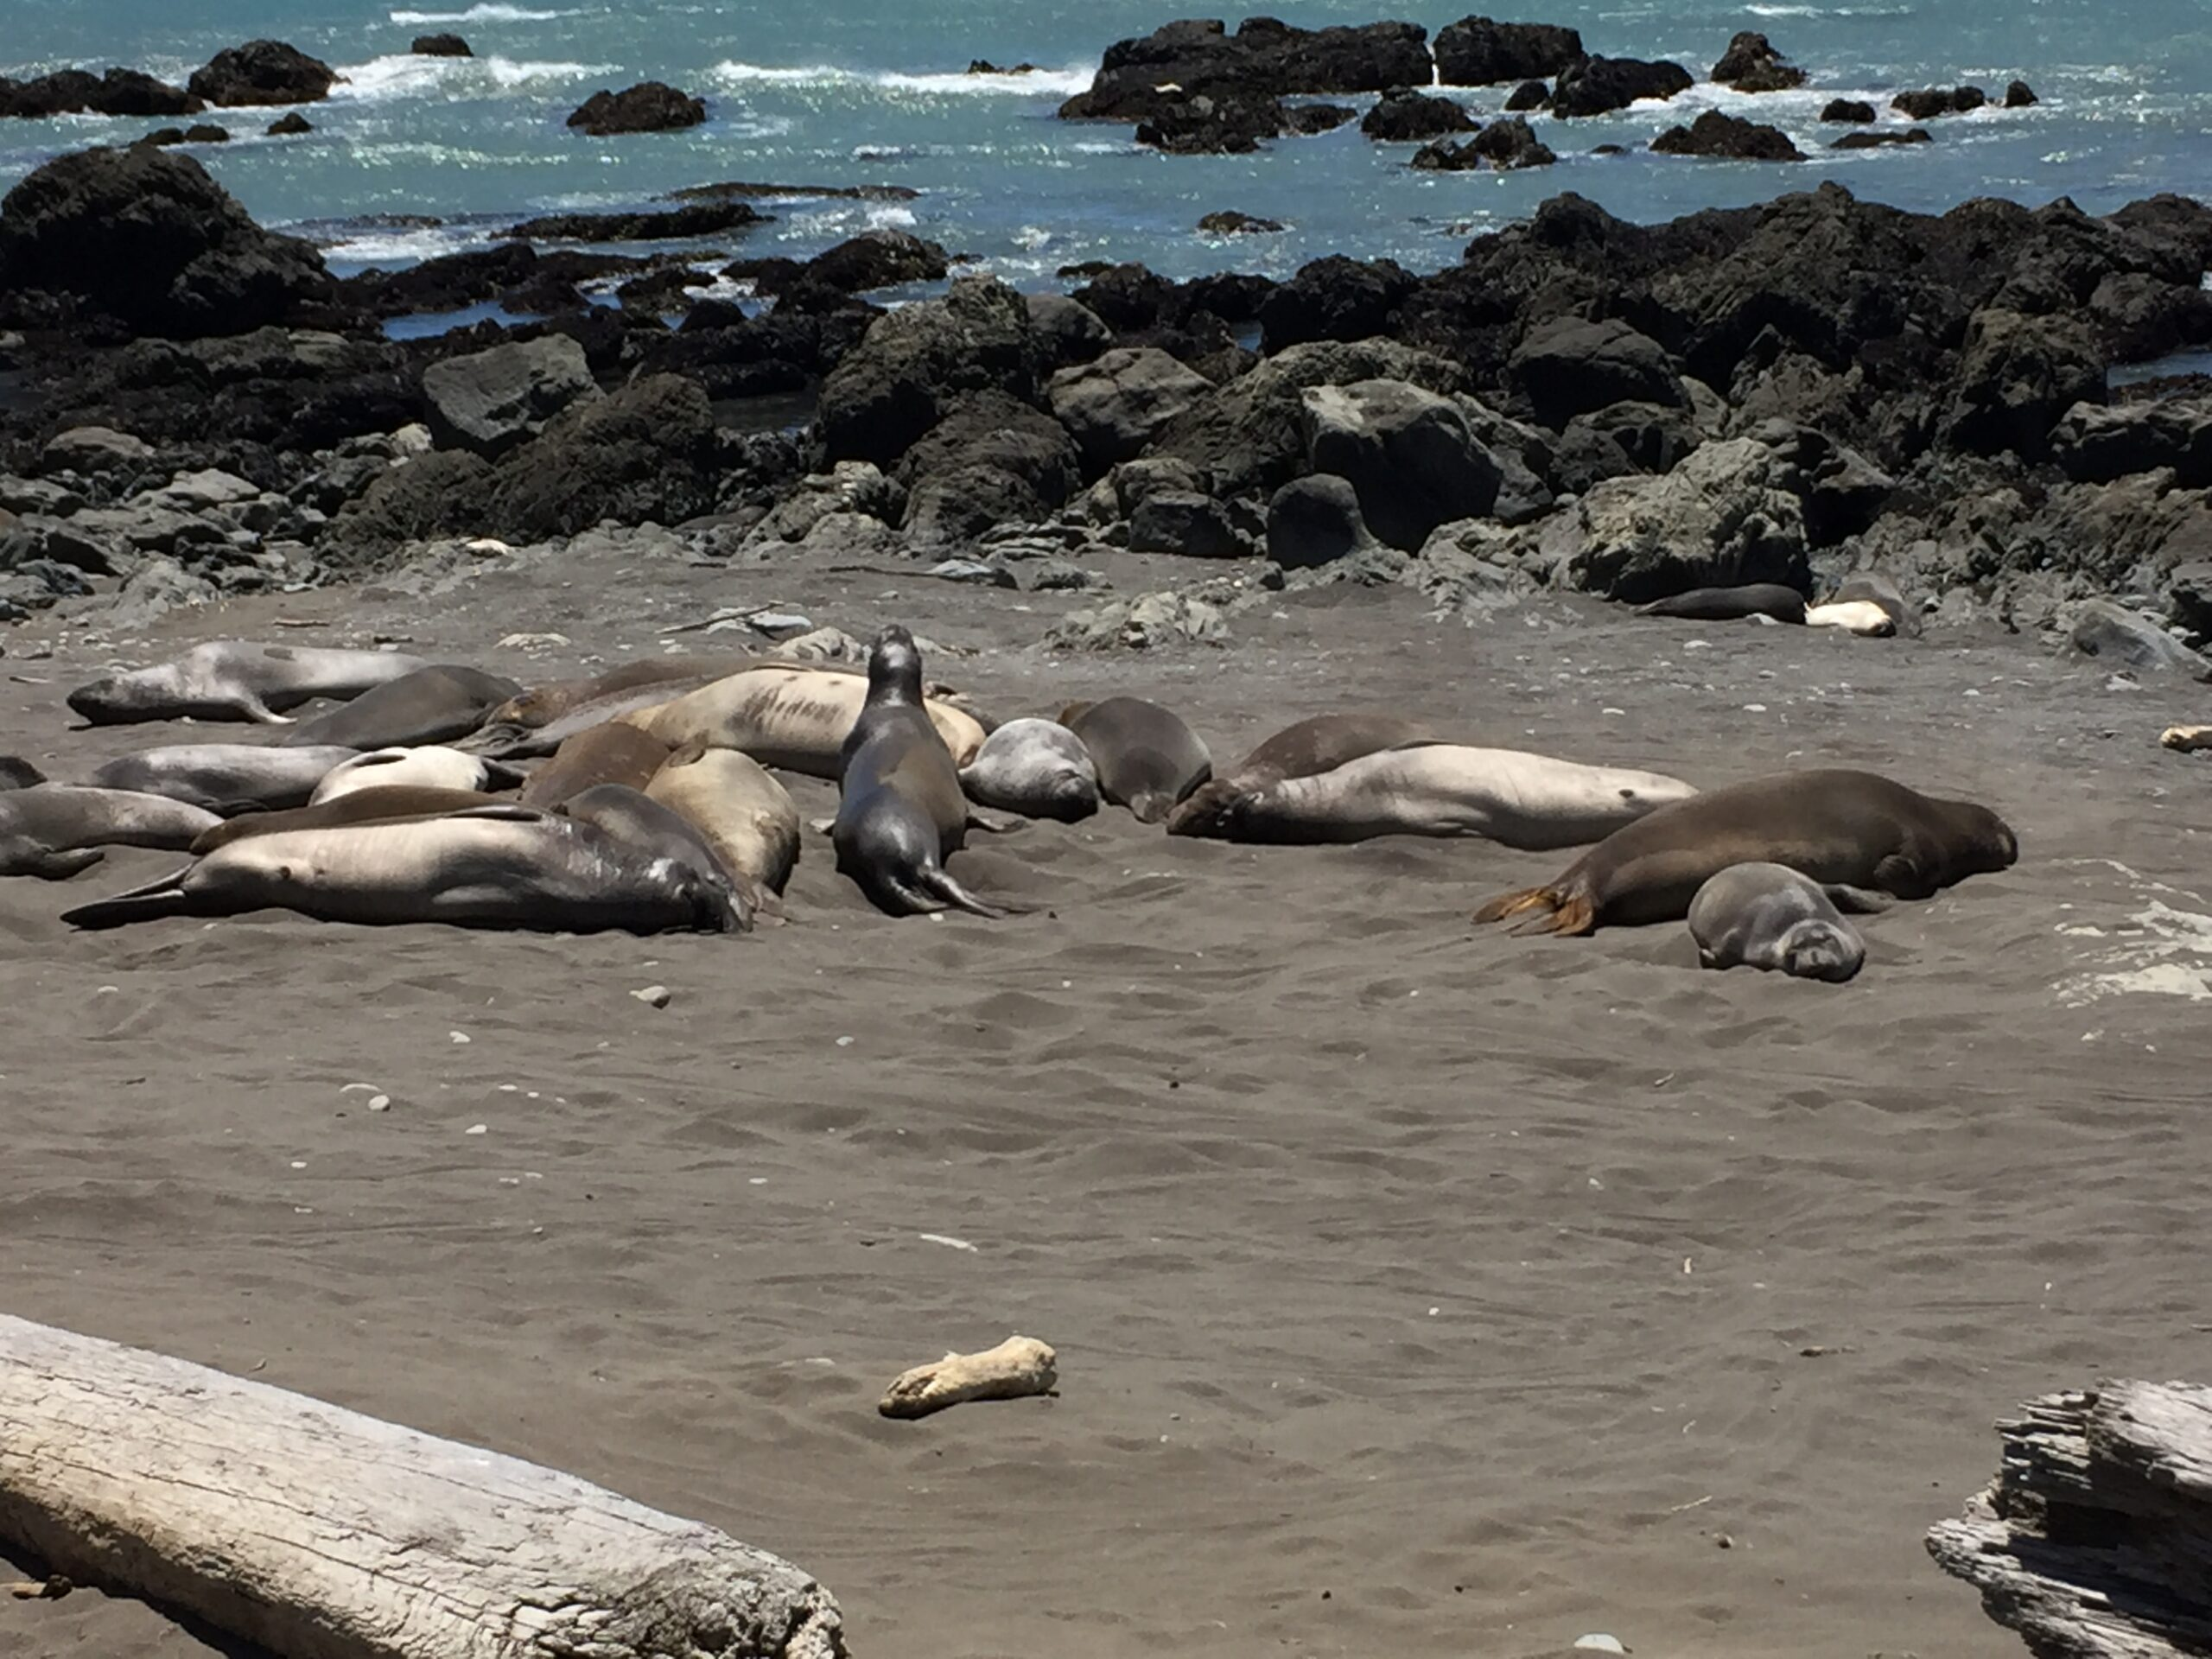 Sea lions at rest near the Punta Gorda Lighthouse